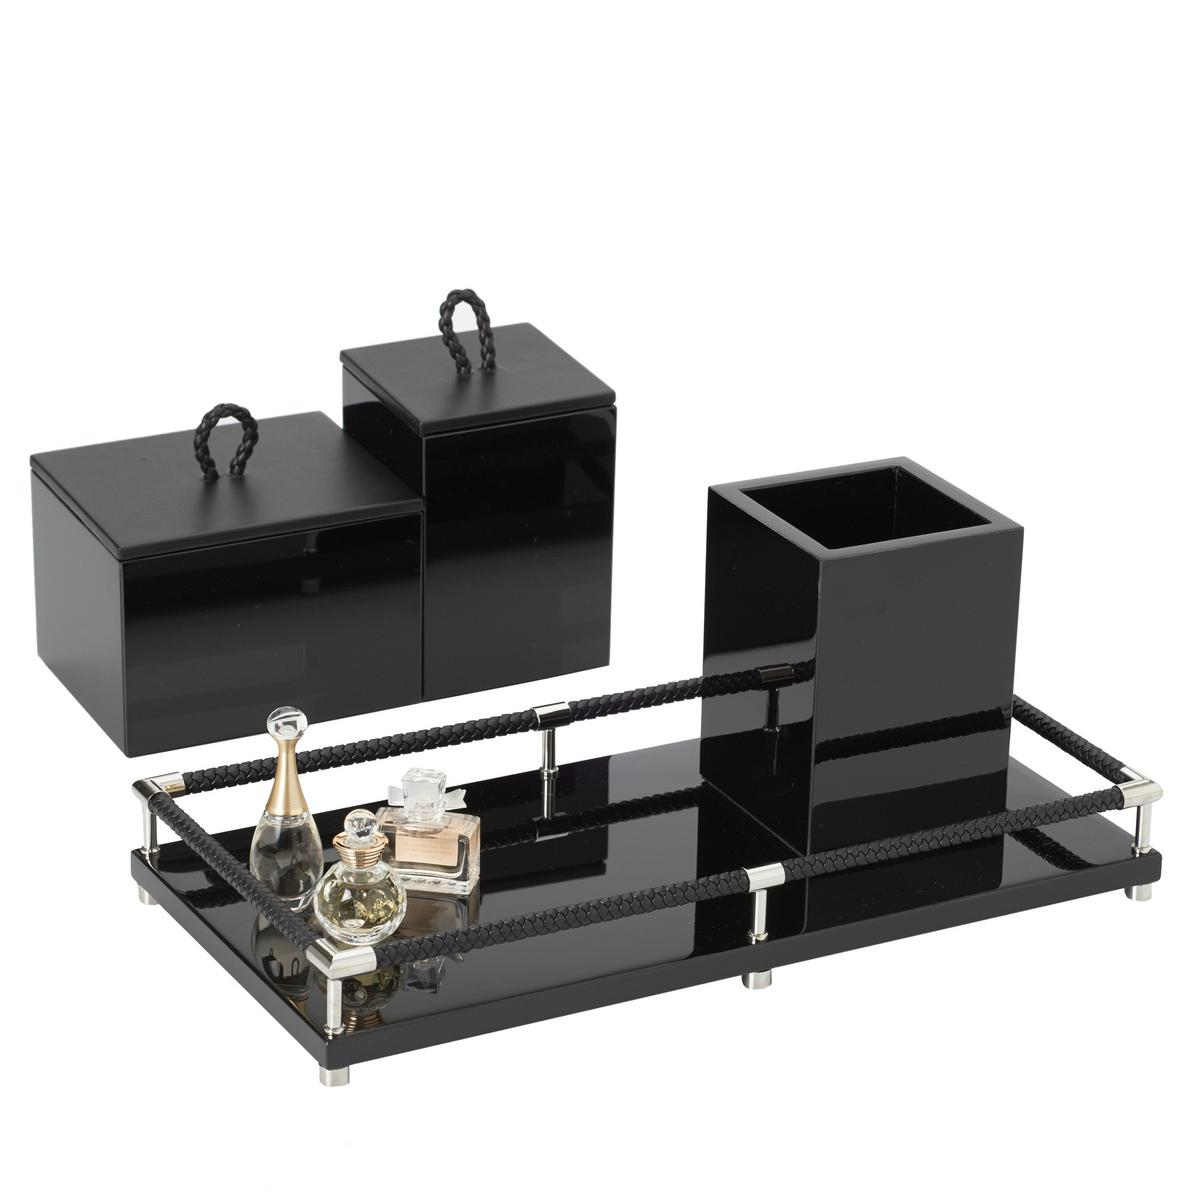 Riviere vanity bathroom accessories black for Bathroom vanity accessories